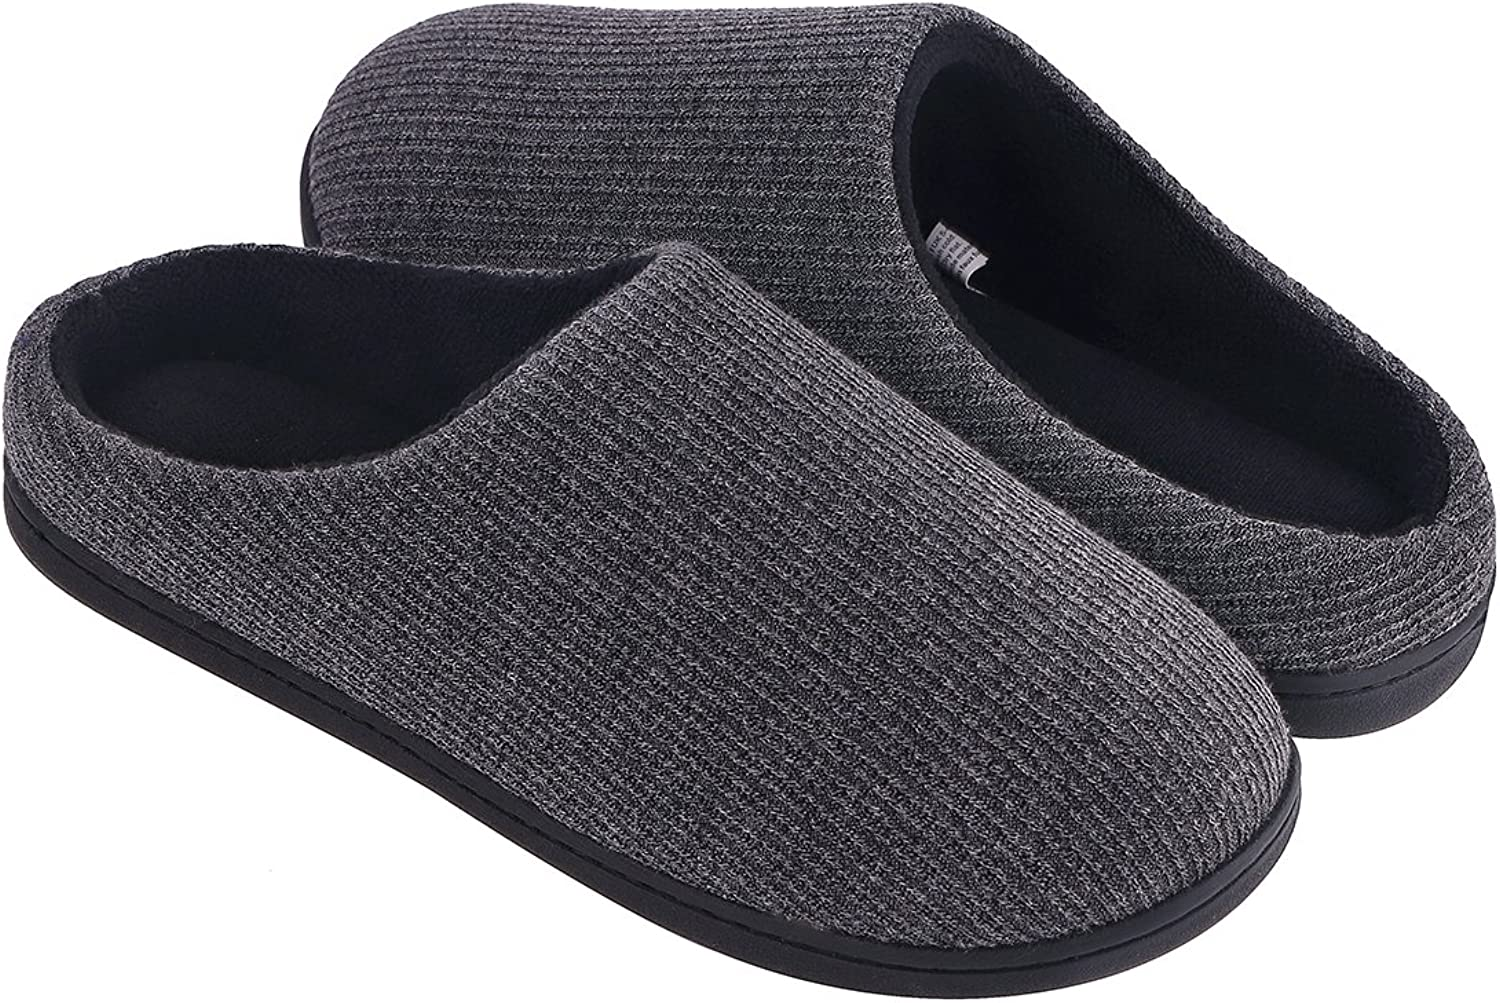 Women's Comfy Memory Foam House Slippers Summer Scuffs for Indoor Outdoor Use